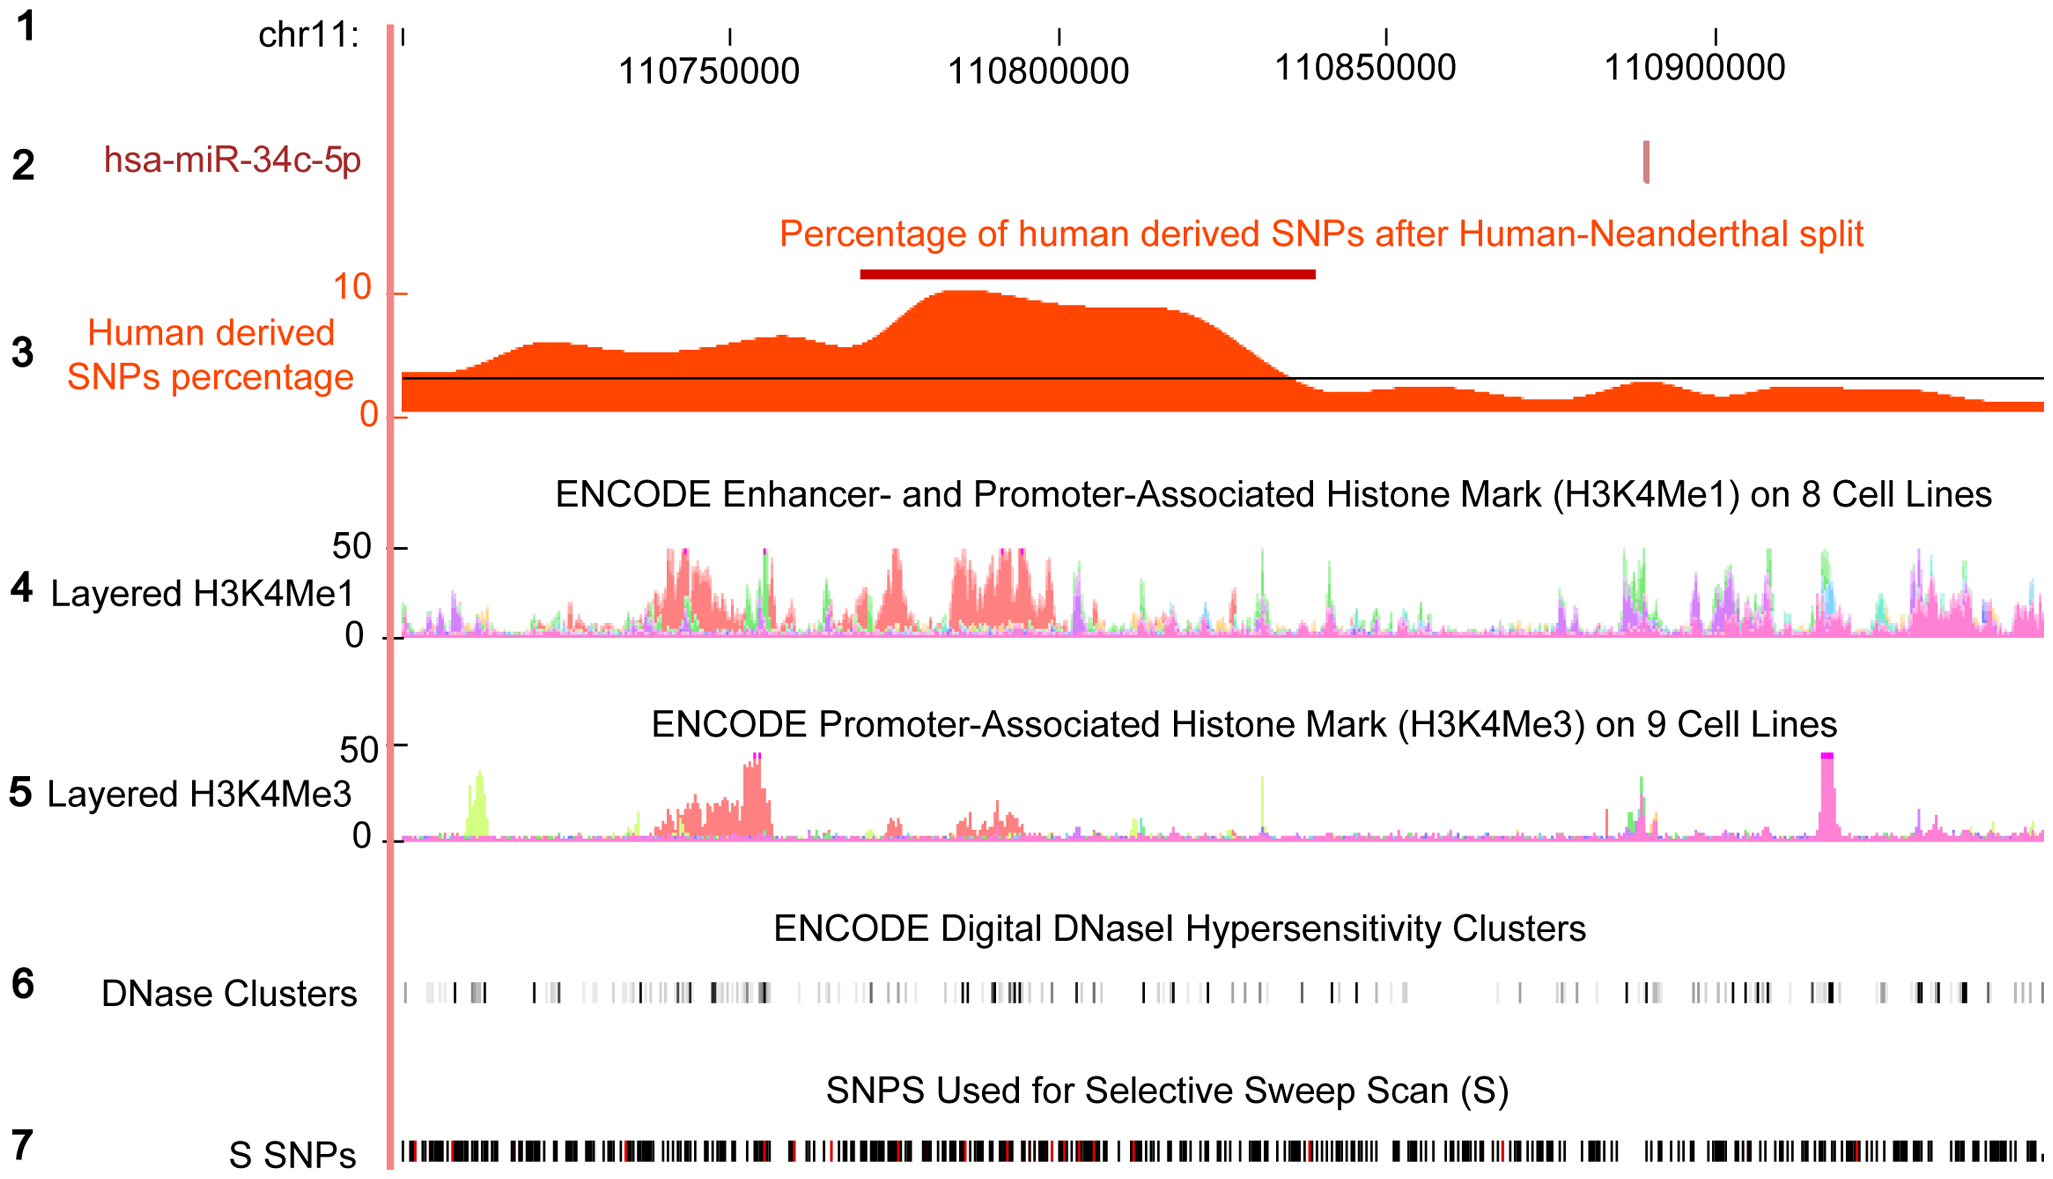 Excess of human derived SNPs in the upstream region of hsa-miR-34c.